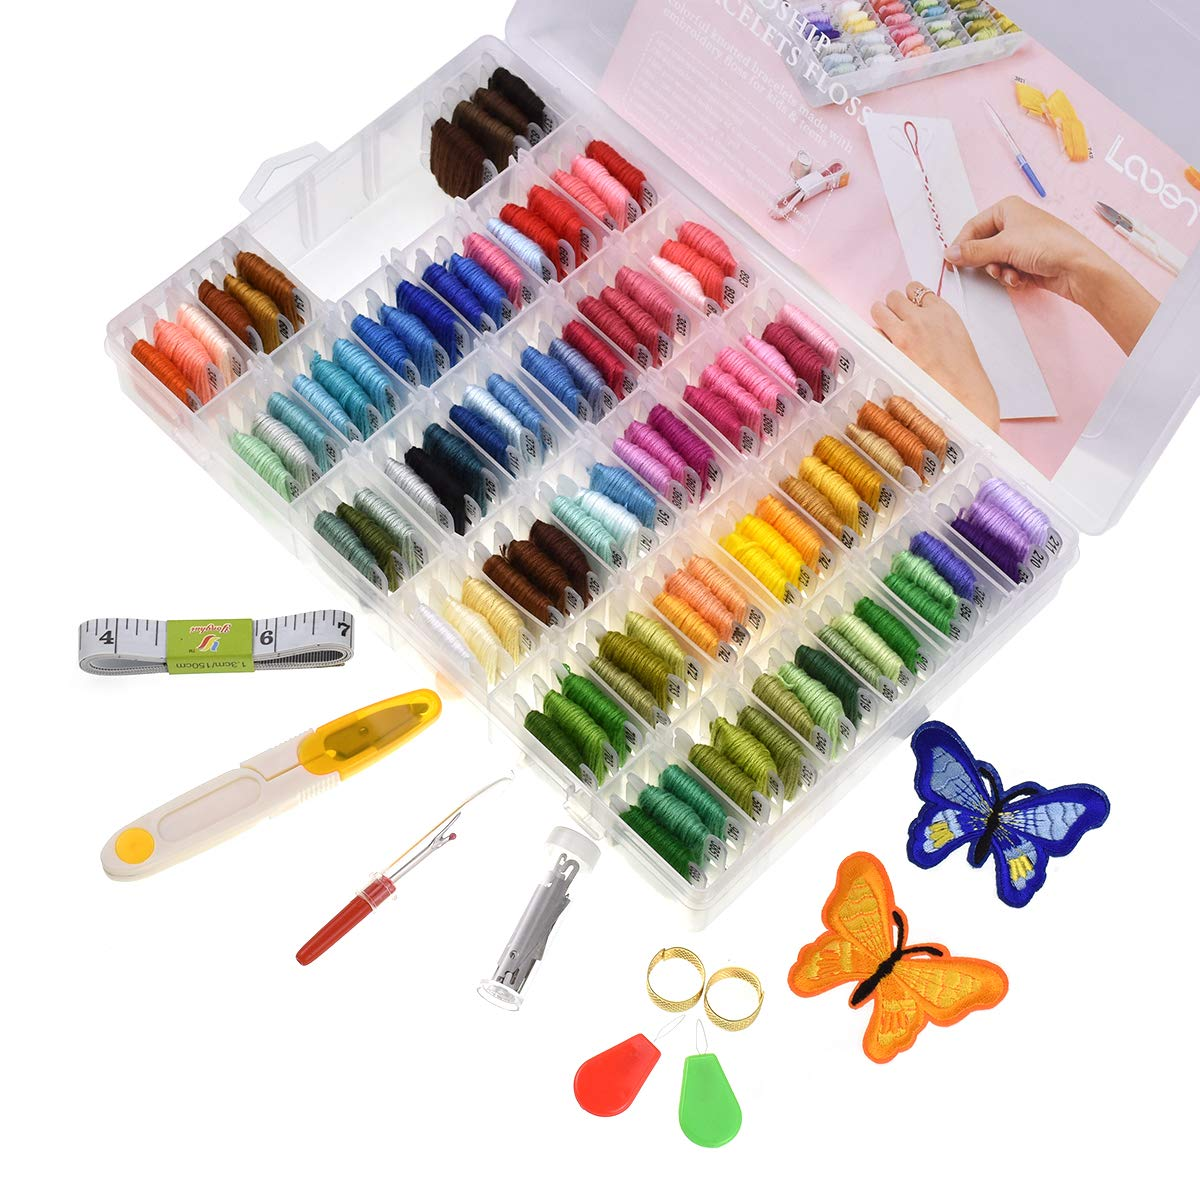 Looen 100 Colors Embroidery Floss with Organizer Storage Box Friendship Bracelet Floss - Prewound Floss Plastic Bobbins with Color Number Craft Thread Weaving String Include 41 Pcs Cross Stitch Kit